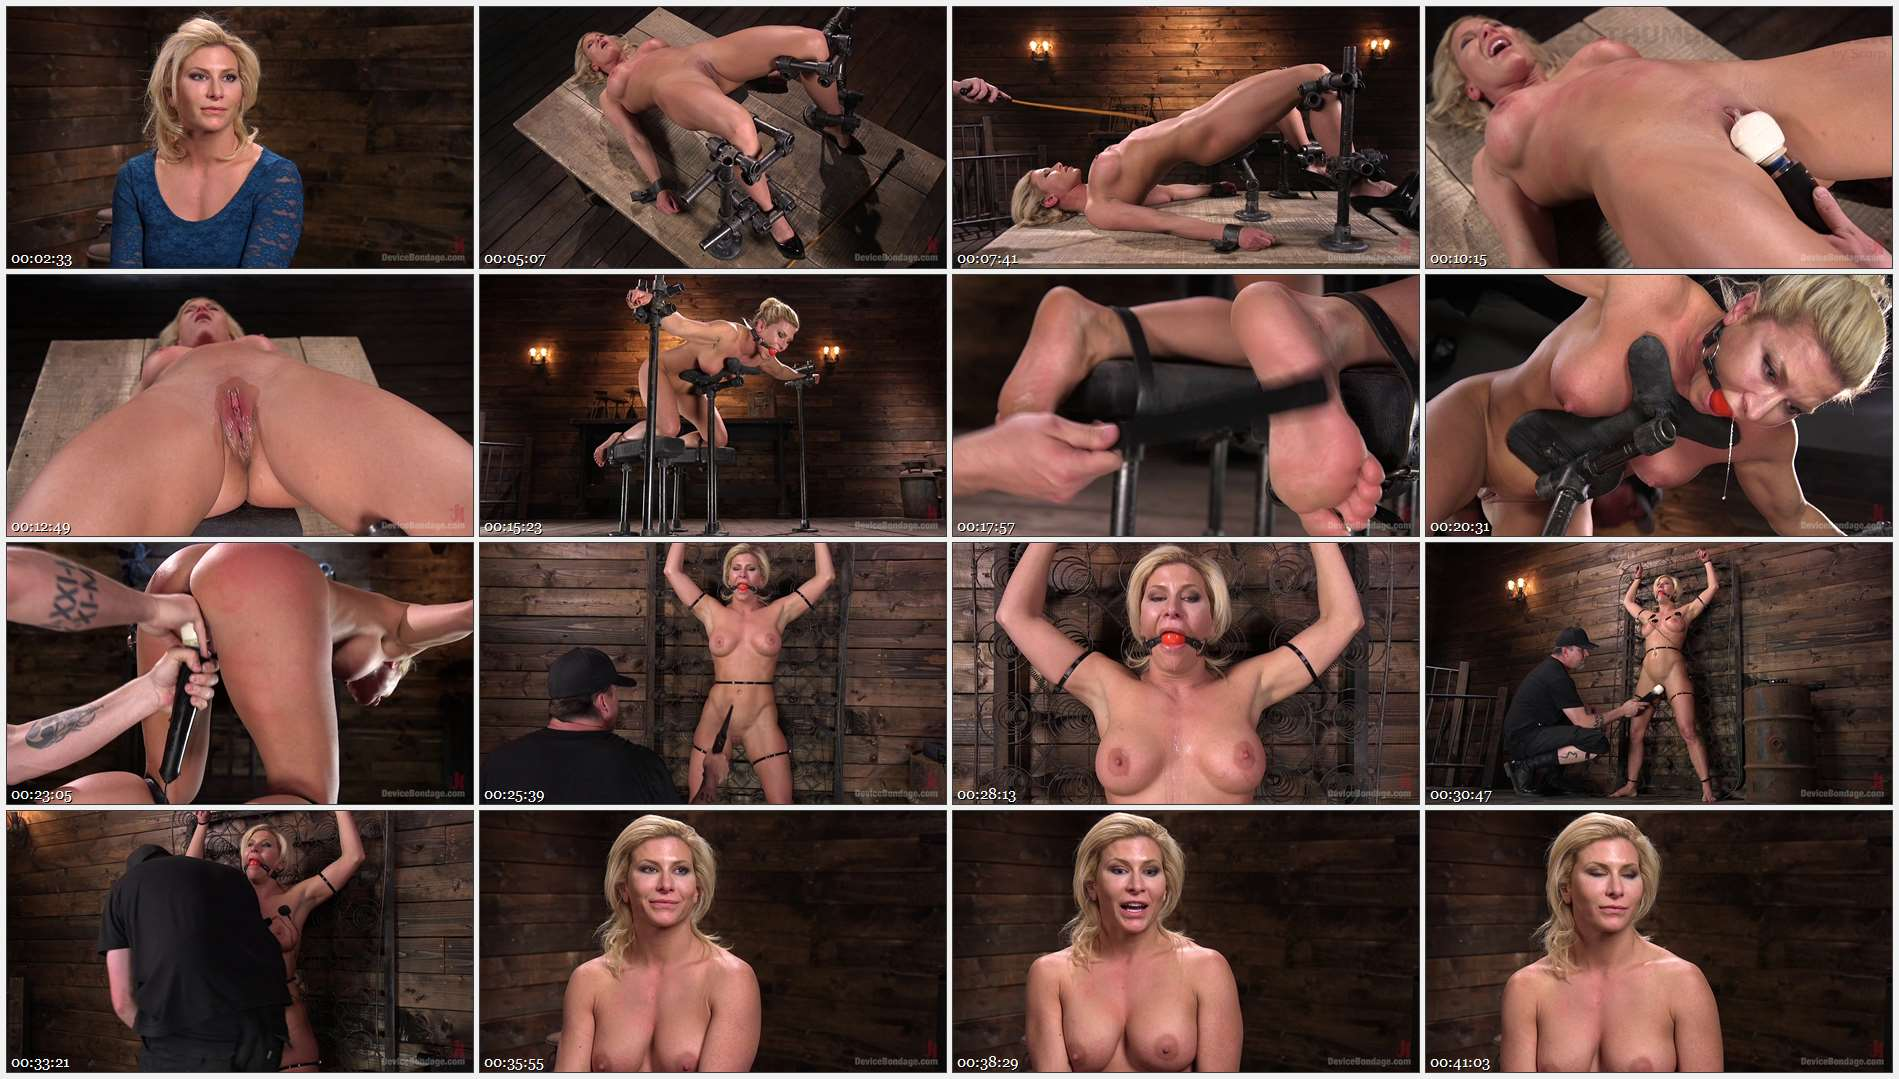 Ariel X – Taking One For the Team